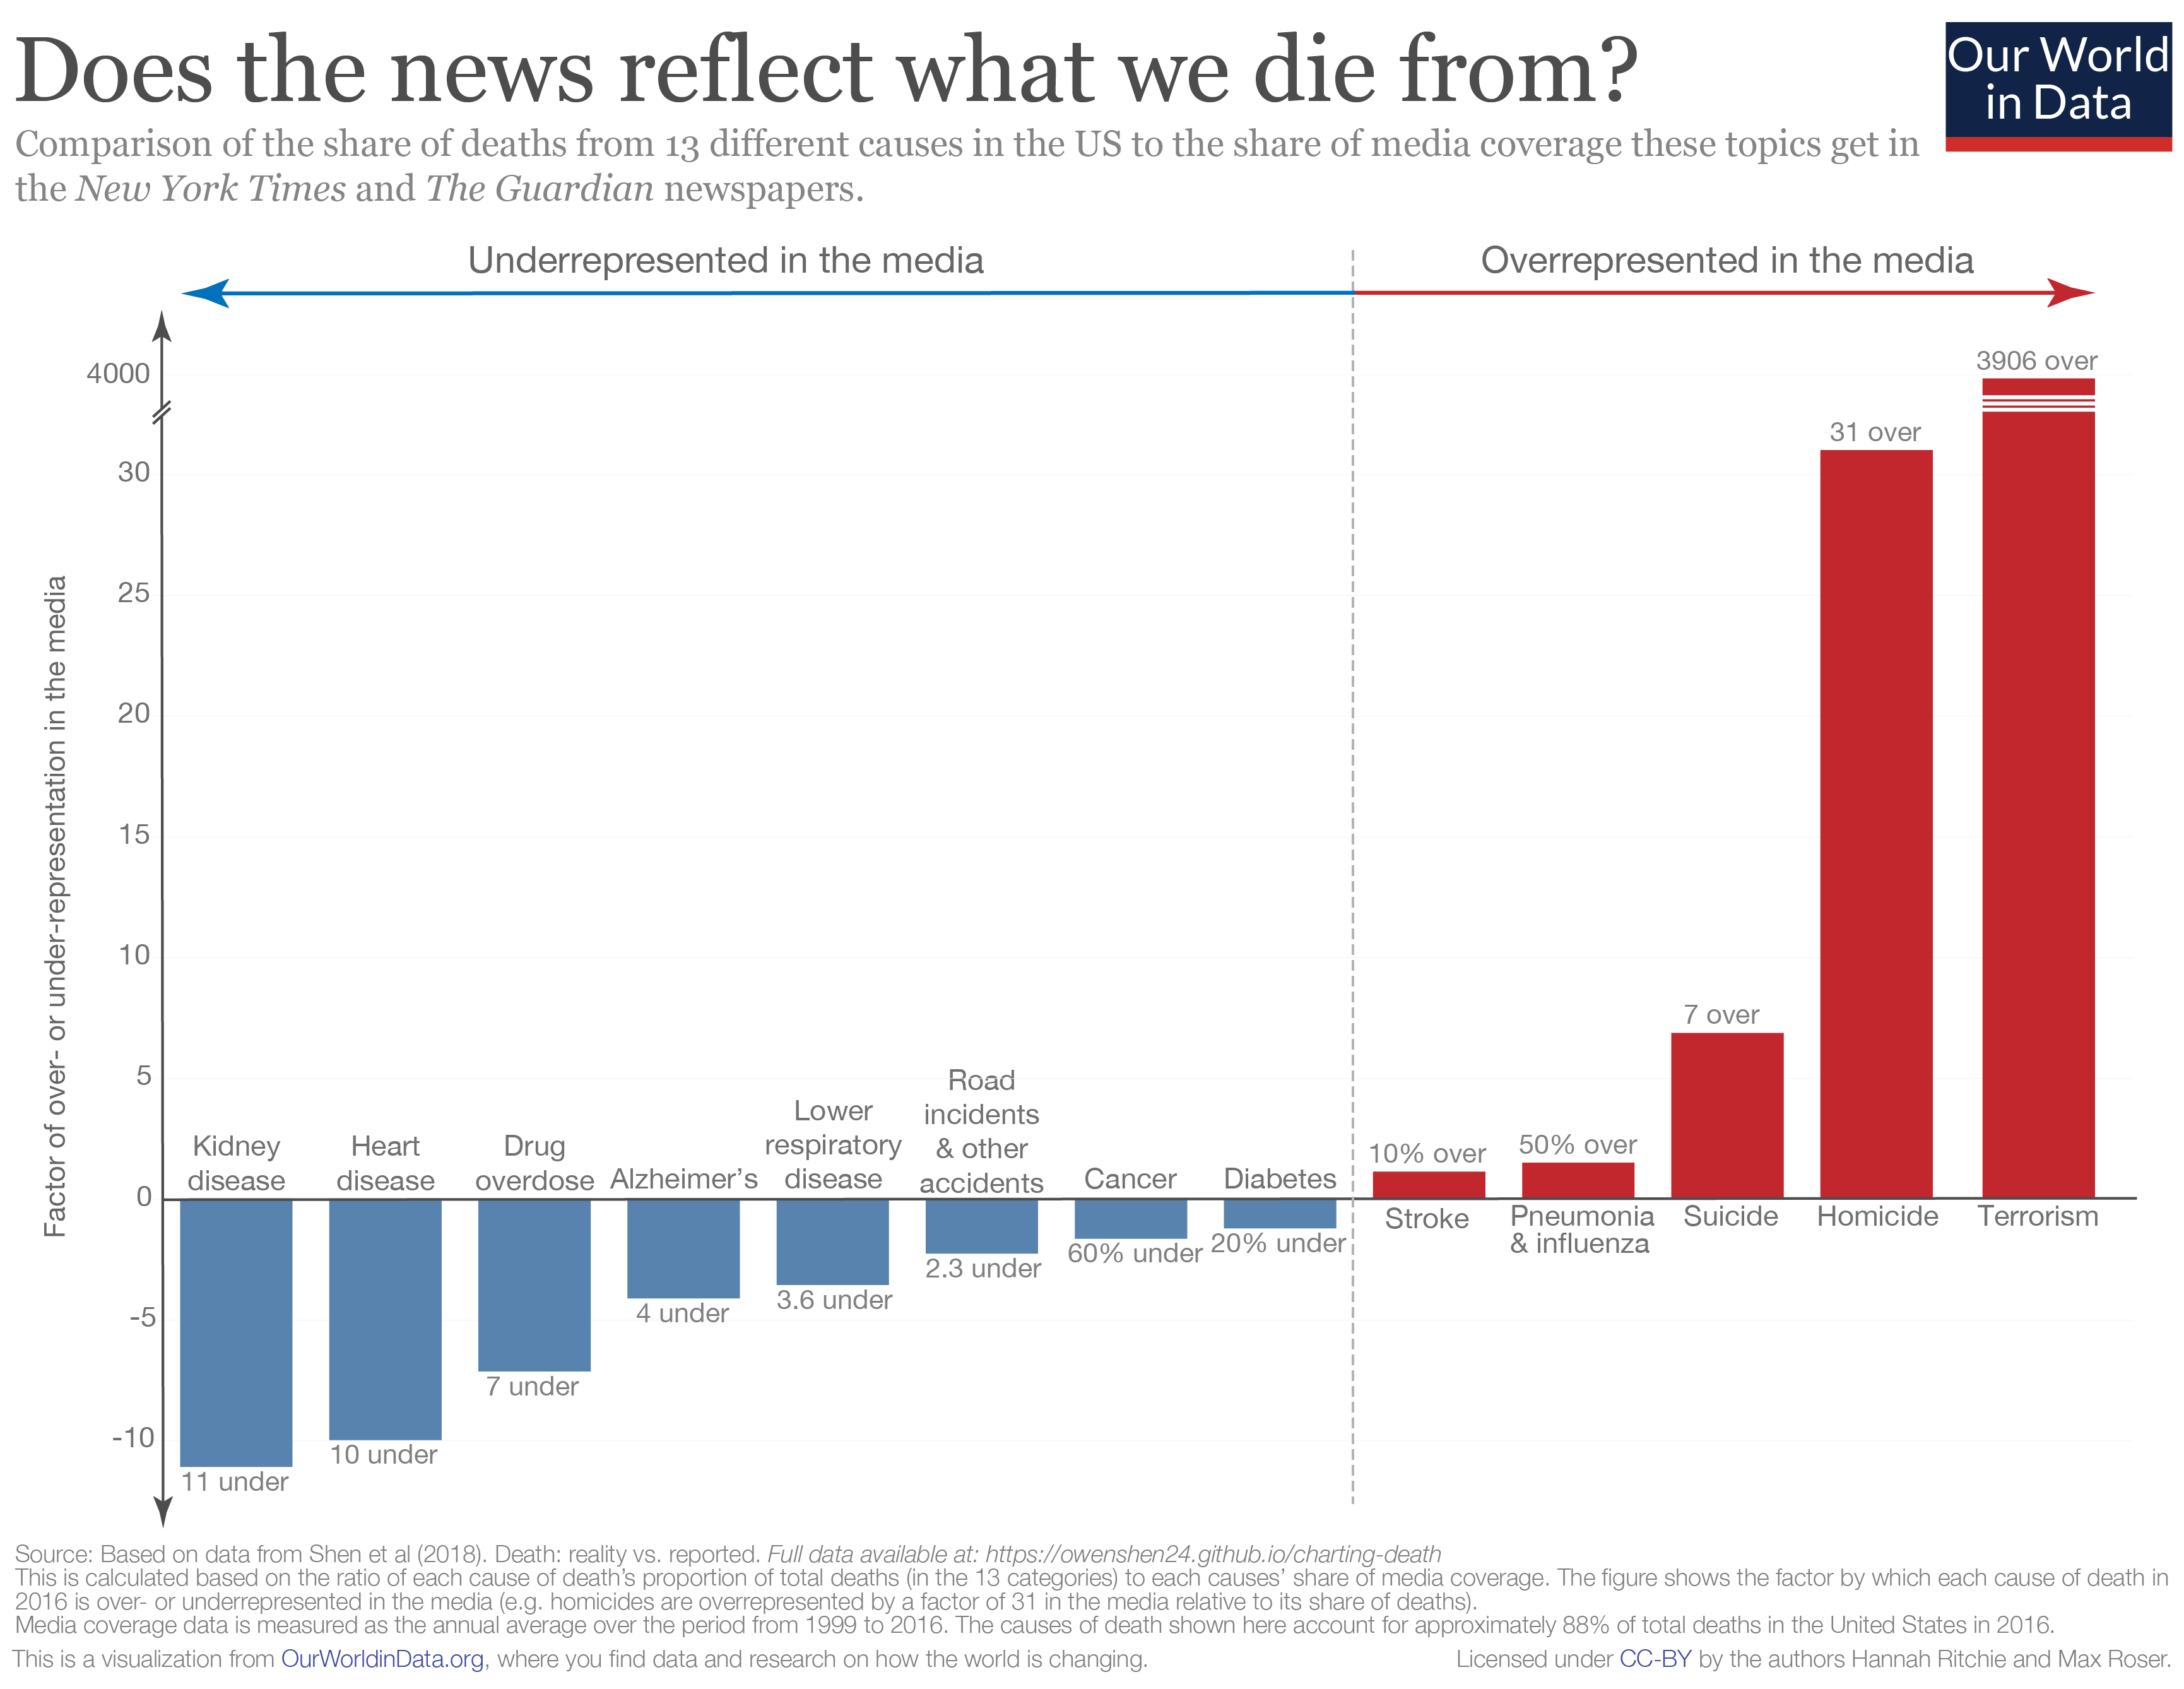 Does the news reflect what we die from?